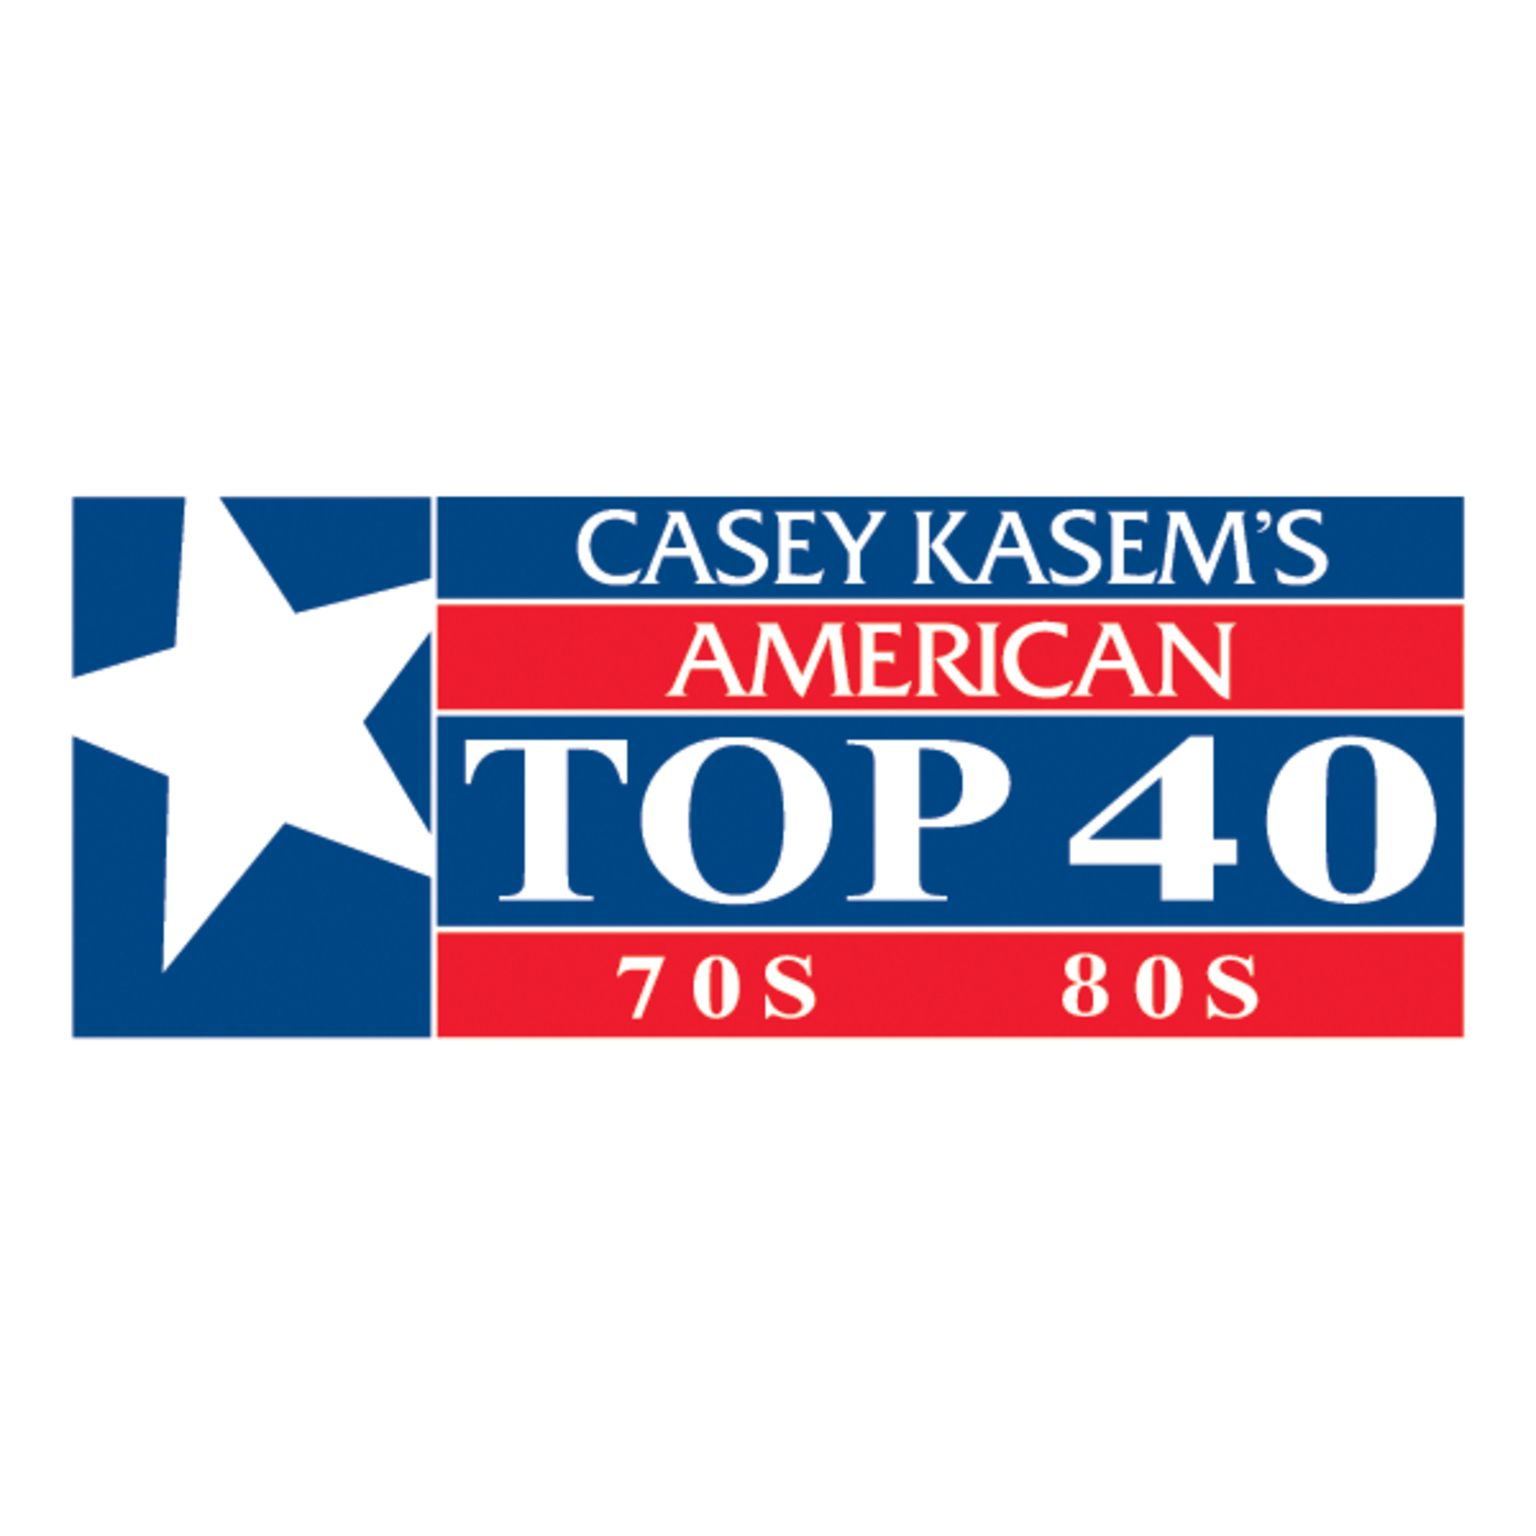 I m listening to Classic American Top 40 70s and 80s Casey Kasem